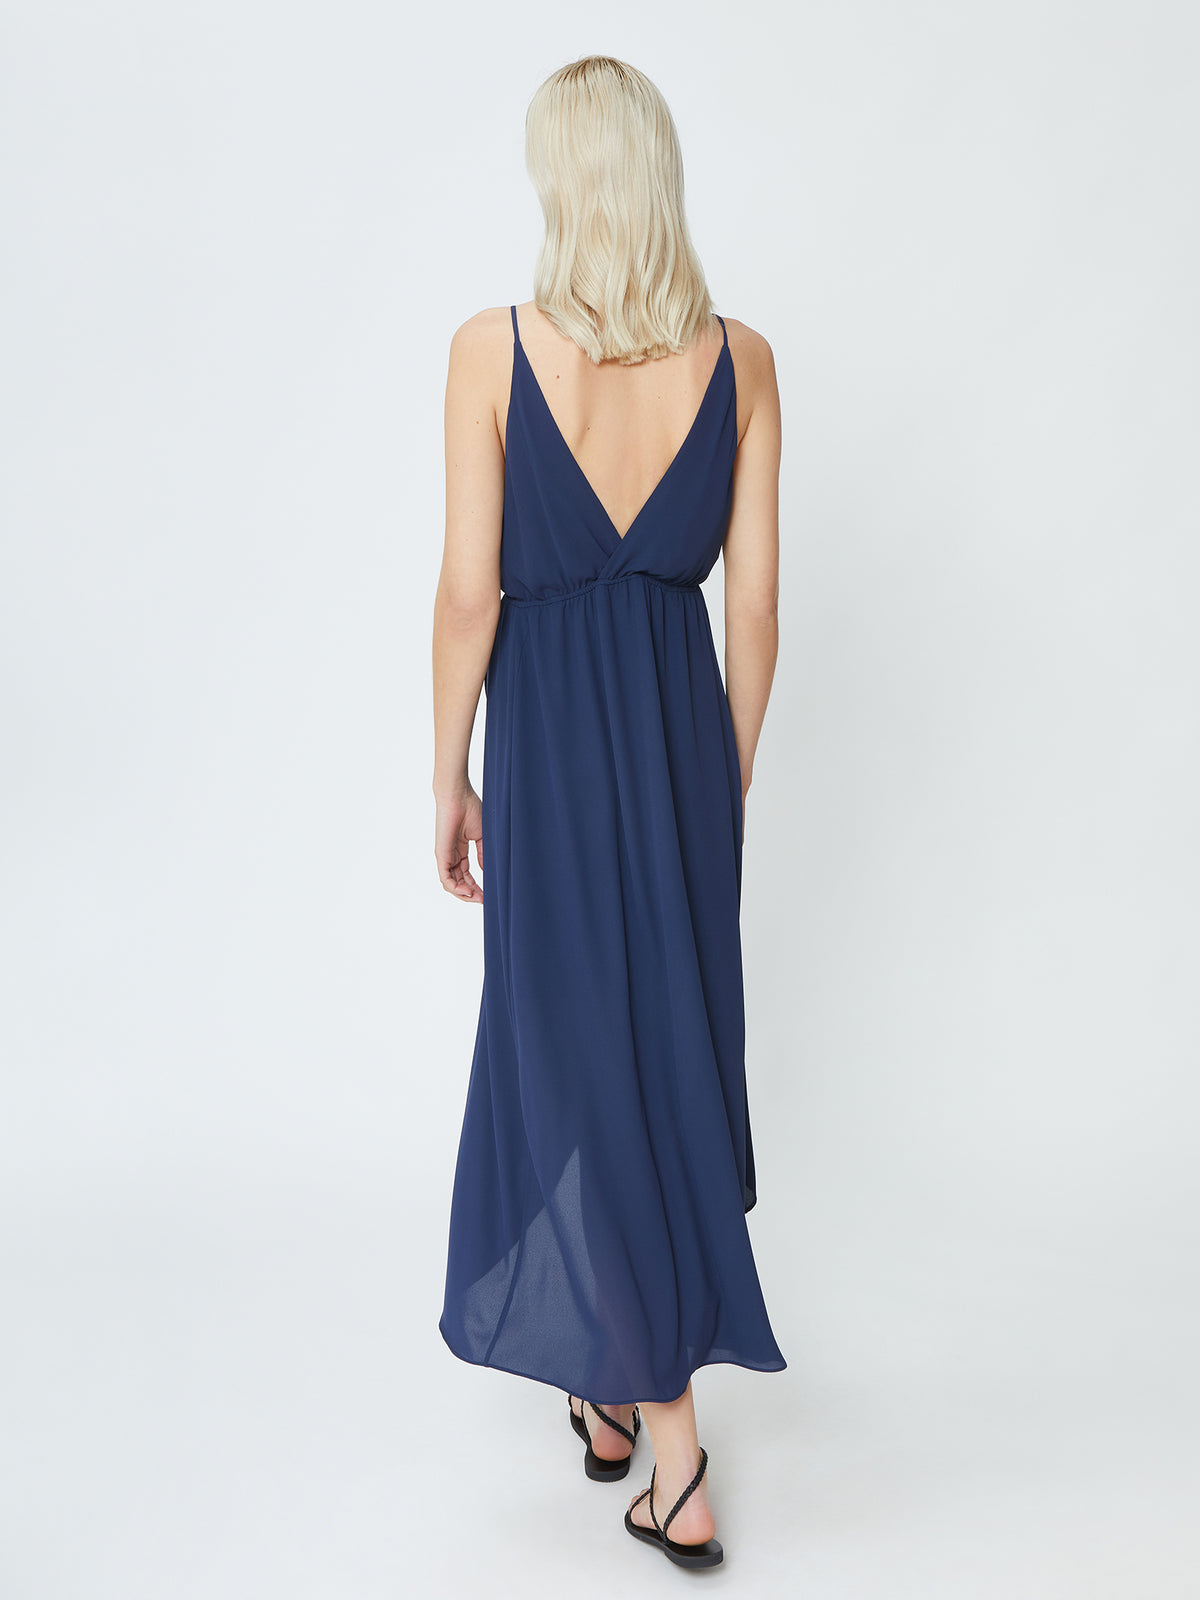 Orchid Dress - Navy